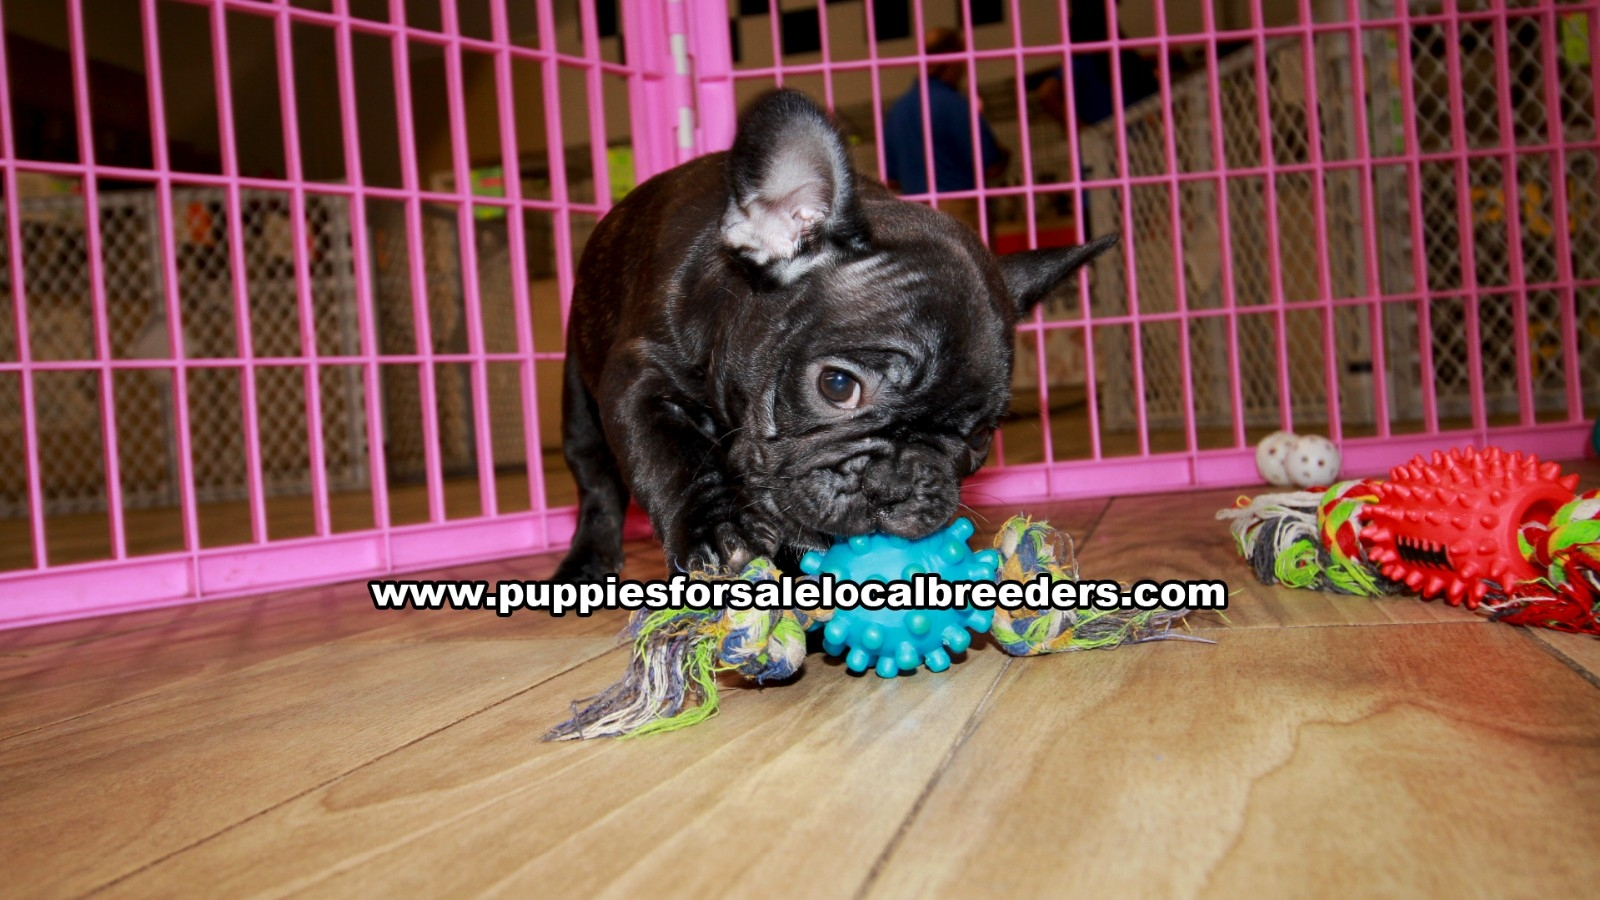 Brindle French Bulldog, Puppies For Sale In Georgia, Local Breeders, Near Atlanta, Ga